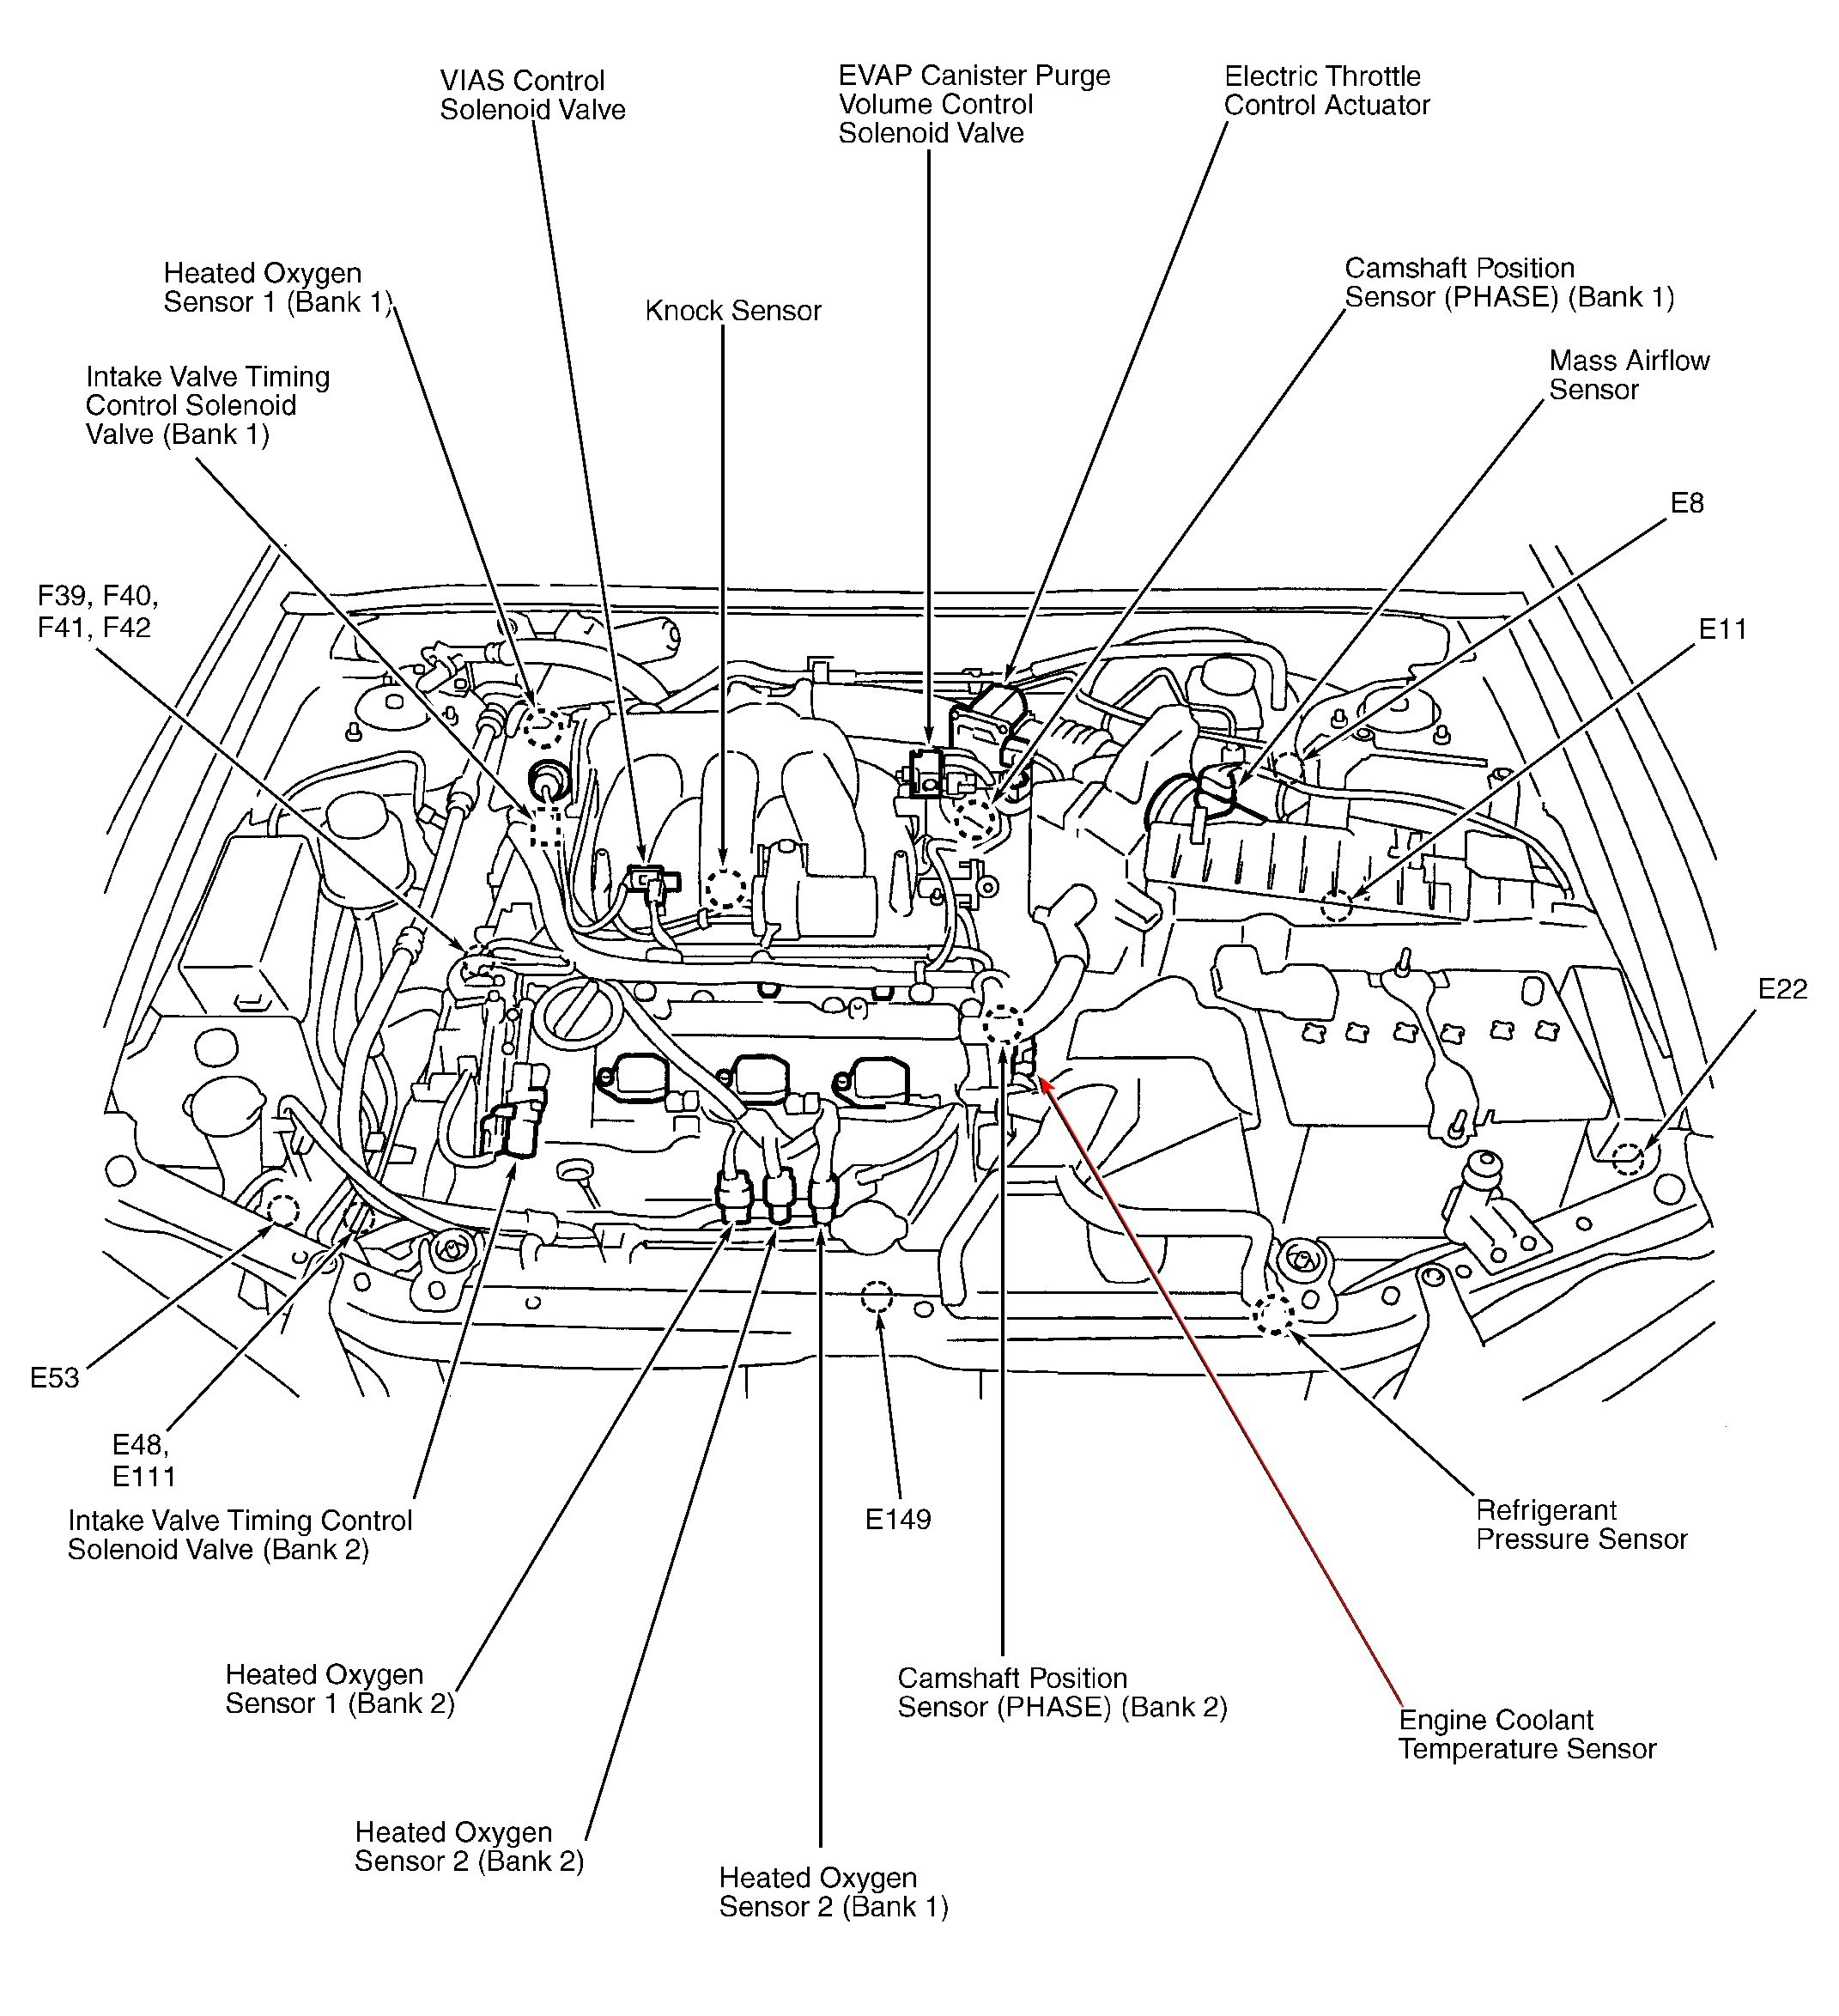 small resolution of wiring diagram as well 1989 jeep cherokee vacuum line diagram jeep cj7 vacuum diagram as well jeep grand cherokee fuel line diagram